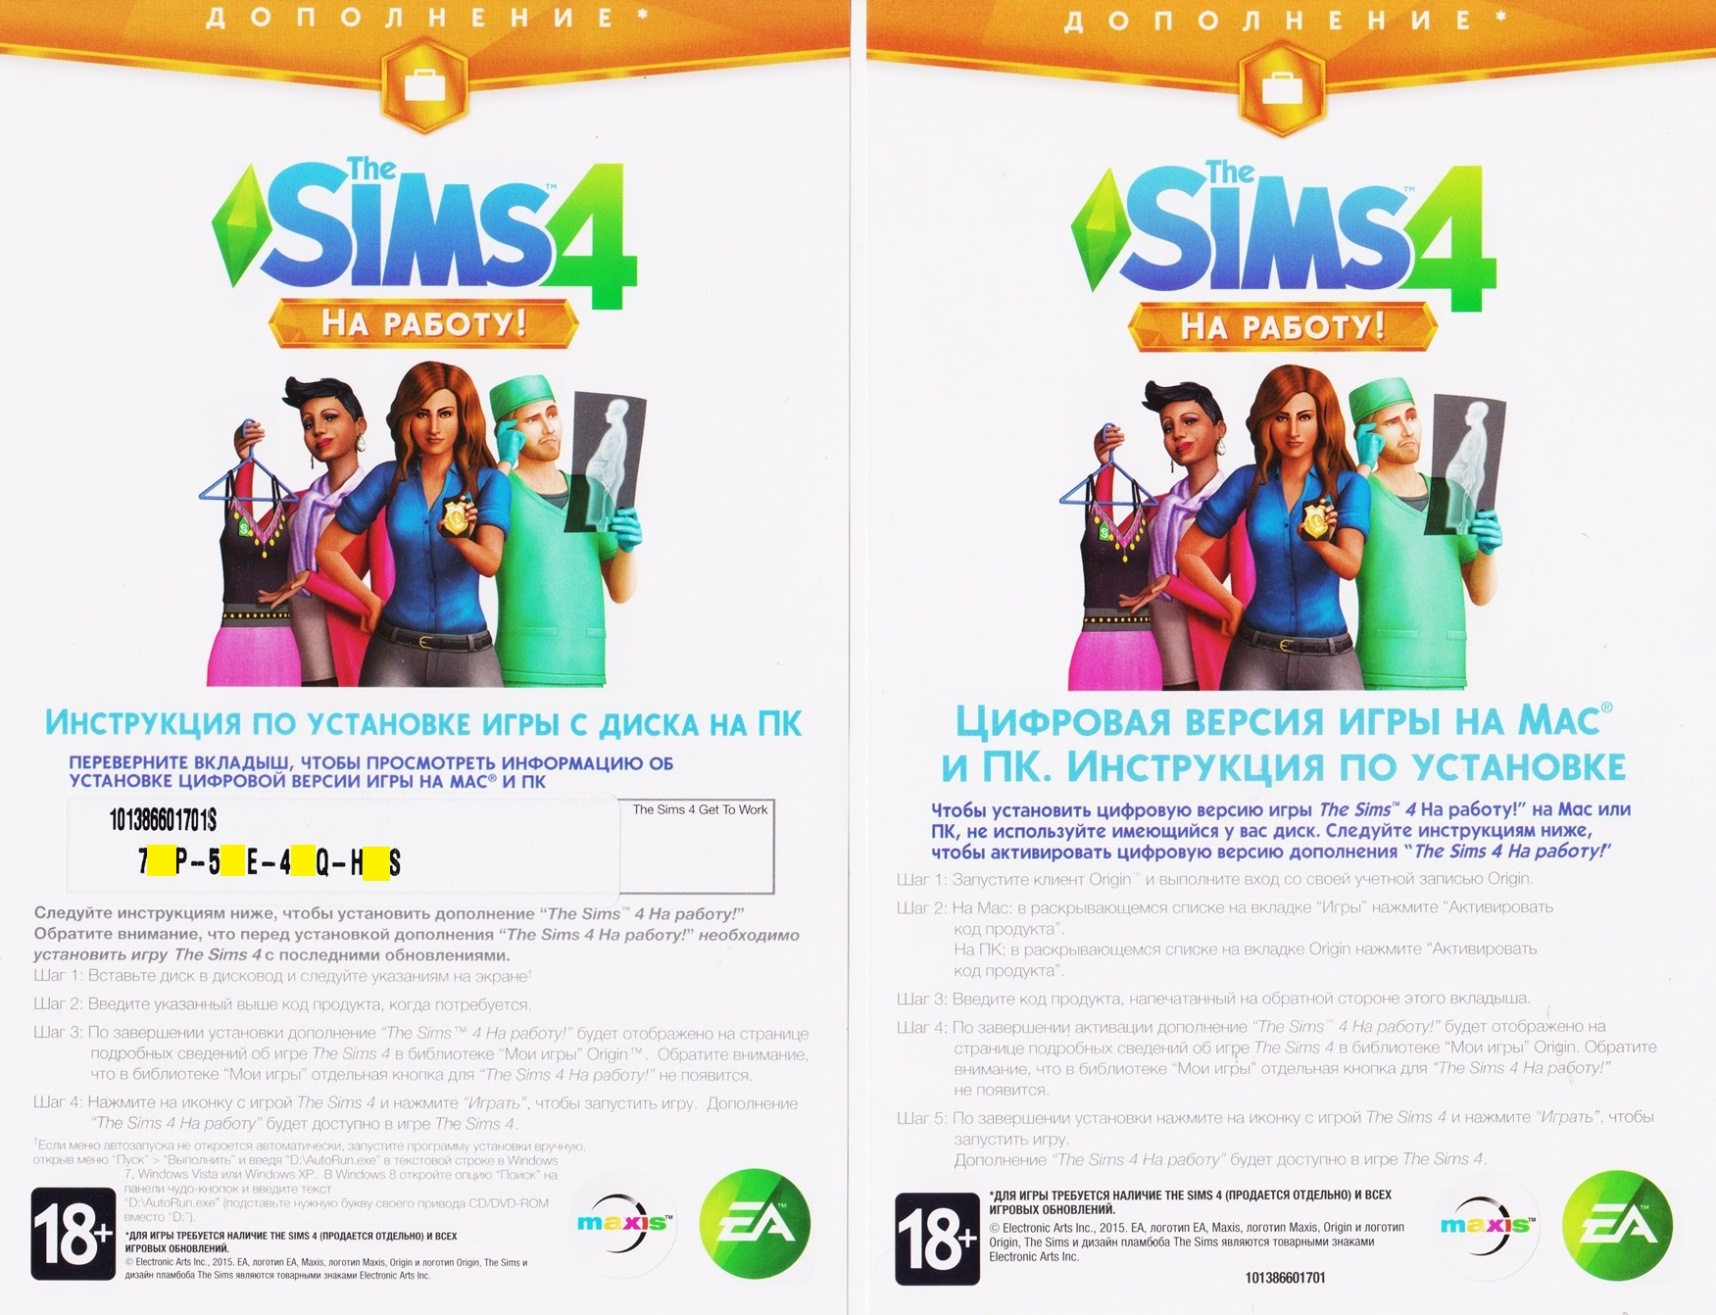 sims 4 cats and dogs activation key no survey